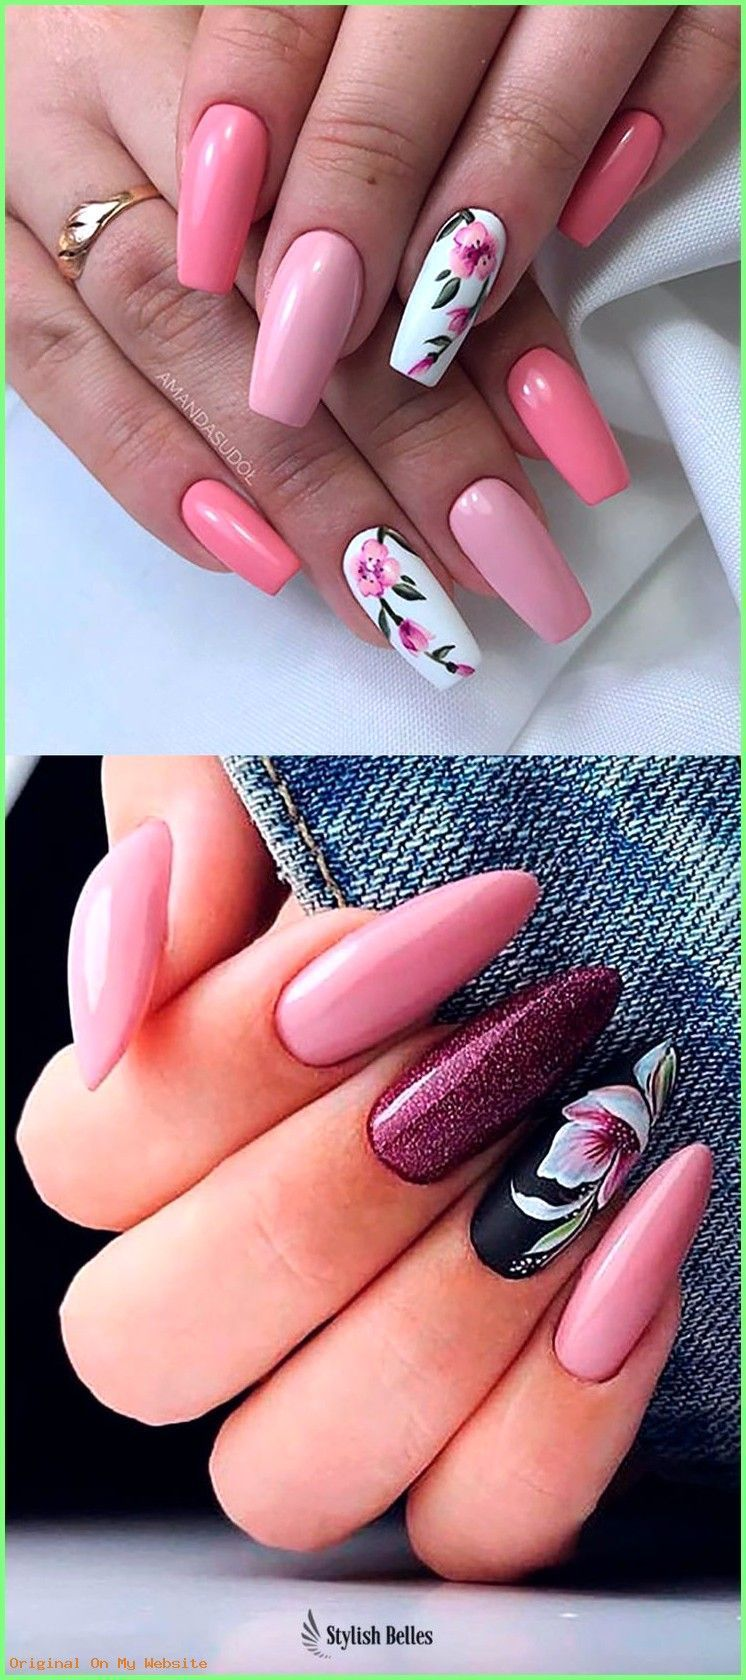 Summer Nails Designs 2019- Cute coffin and almond floral nails ideas #summerholidaynailsdesi... - Nails #happytiere #bea... - Spring Trends